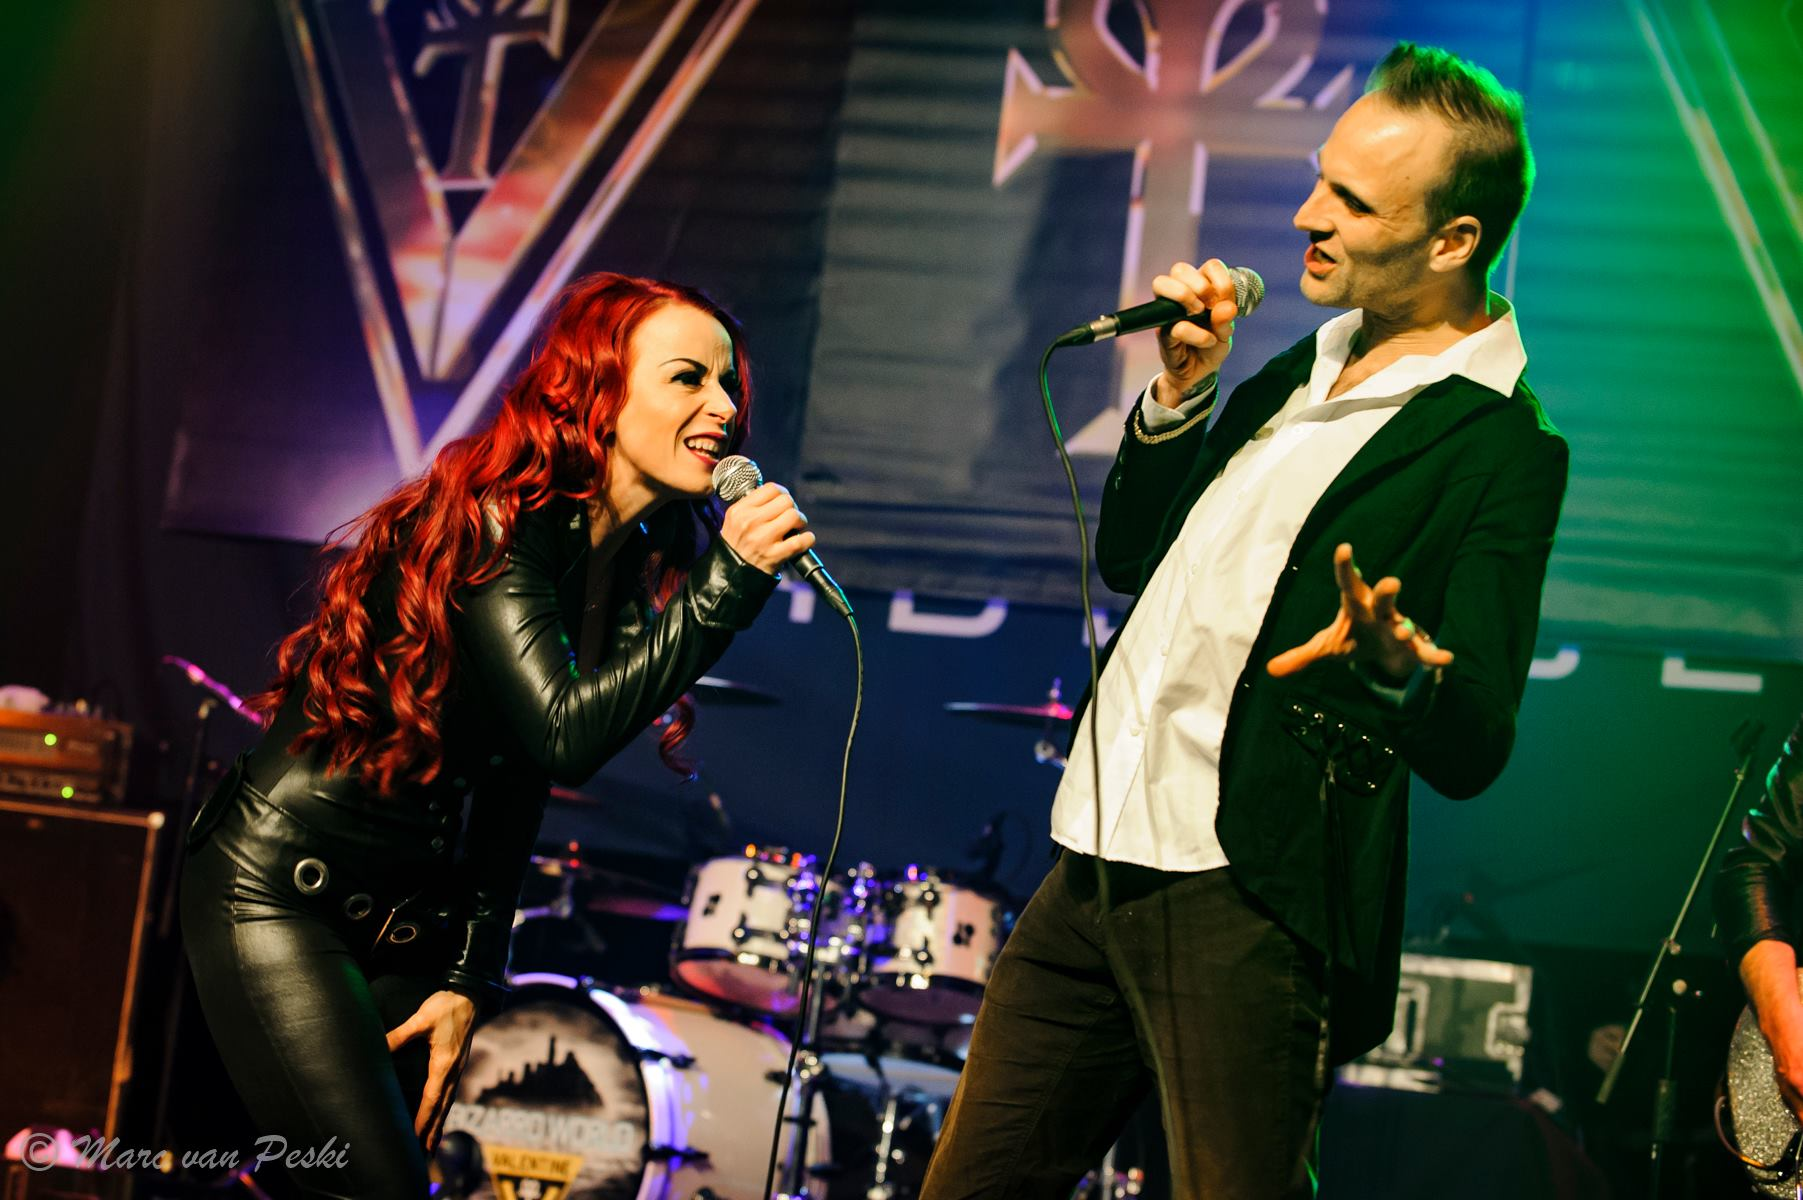 Baz singing Angel Of My Heart with Valentine at Podium Hardenberg in The Netherlands 15th April 2017 by Marc Van Peski